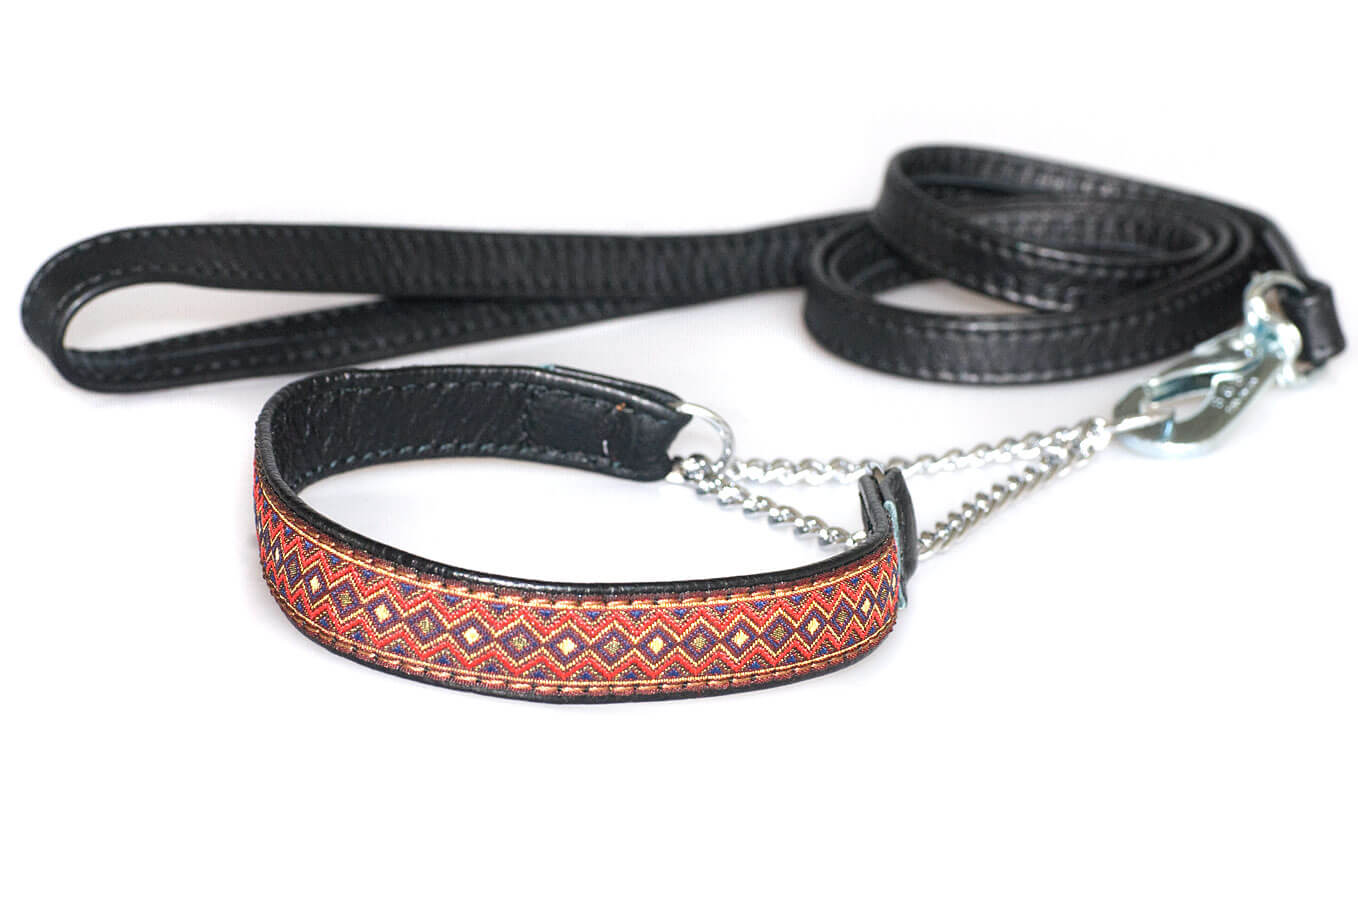 Black nappa leather double folded stitched dog lead 1.5m / 5ft with martingale ribbon collar